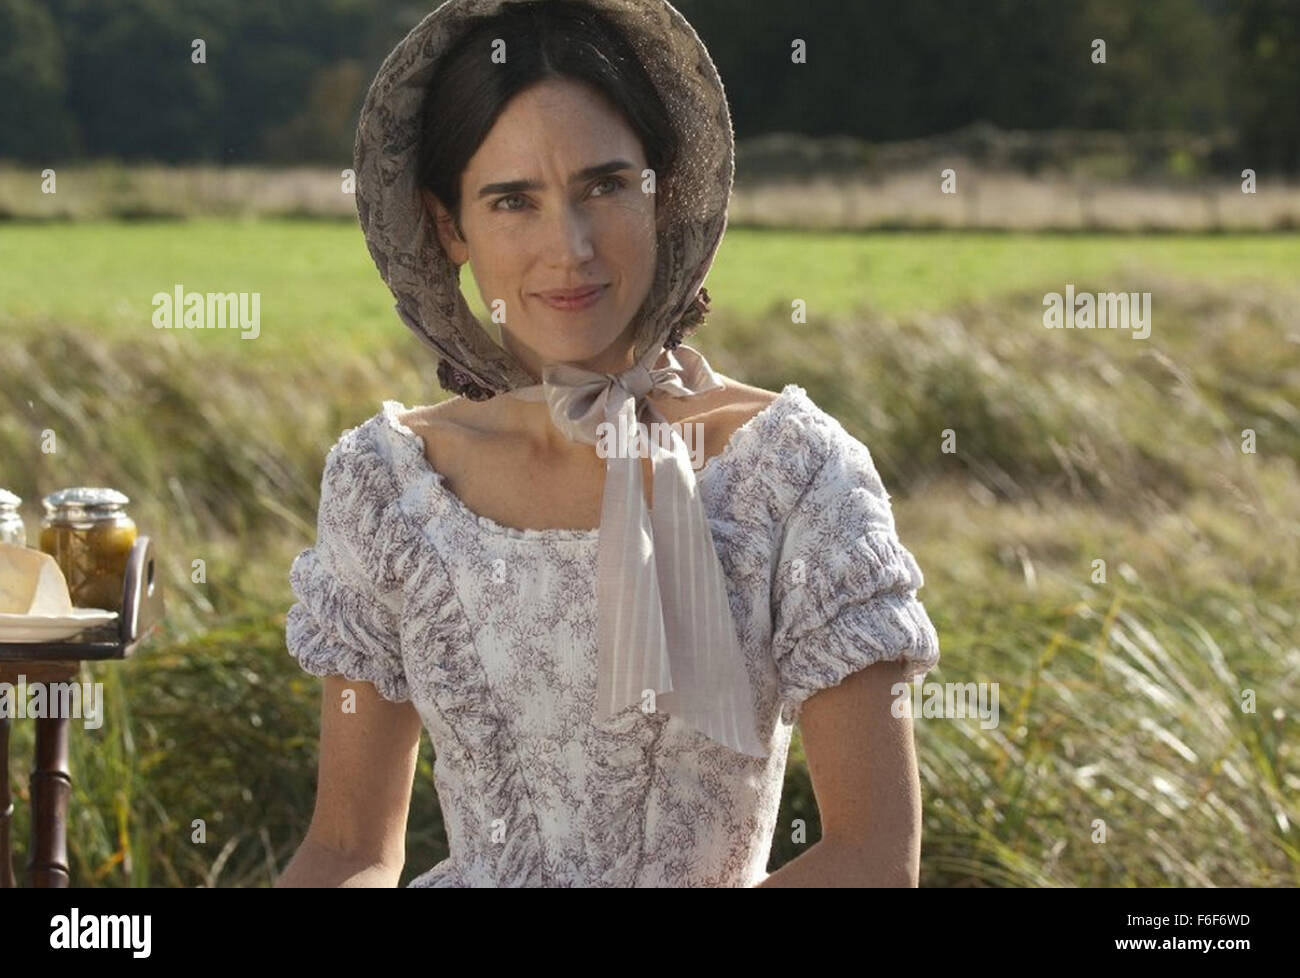 CREATION 2009 RPC/BBC Films production with Jennifer Connelly - Stock Image